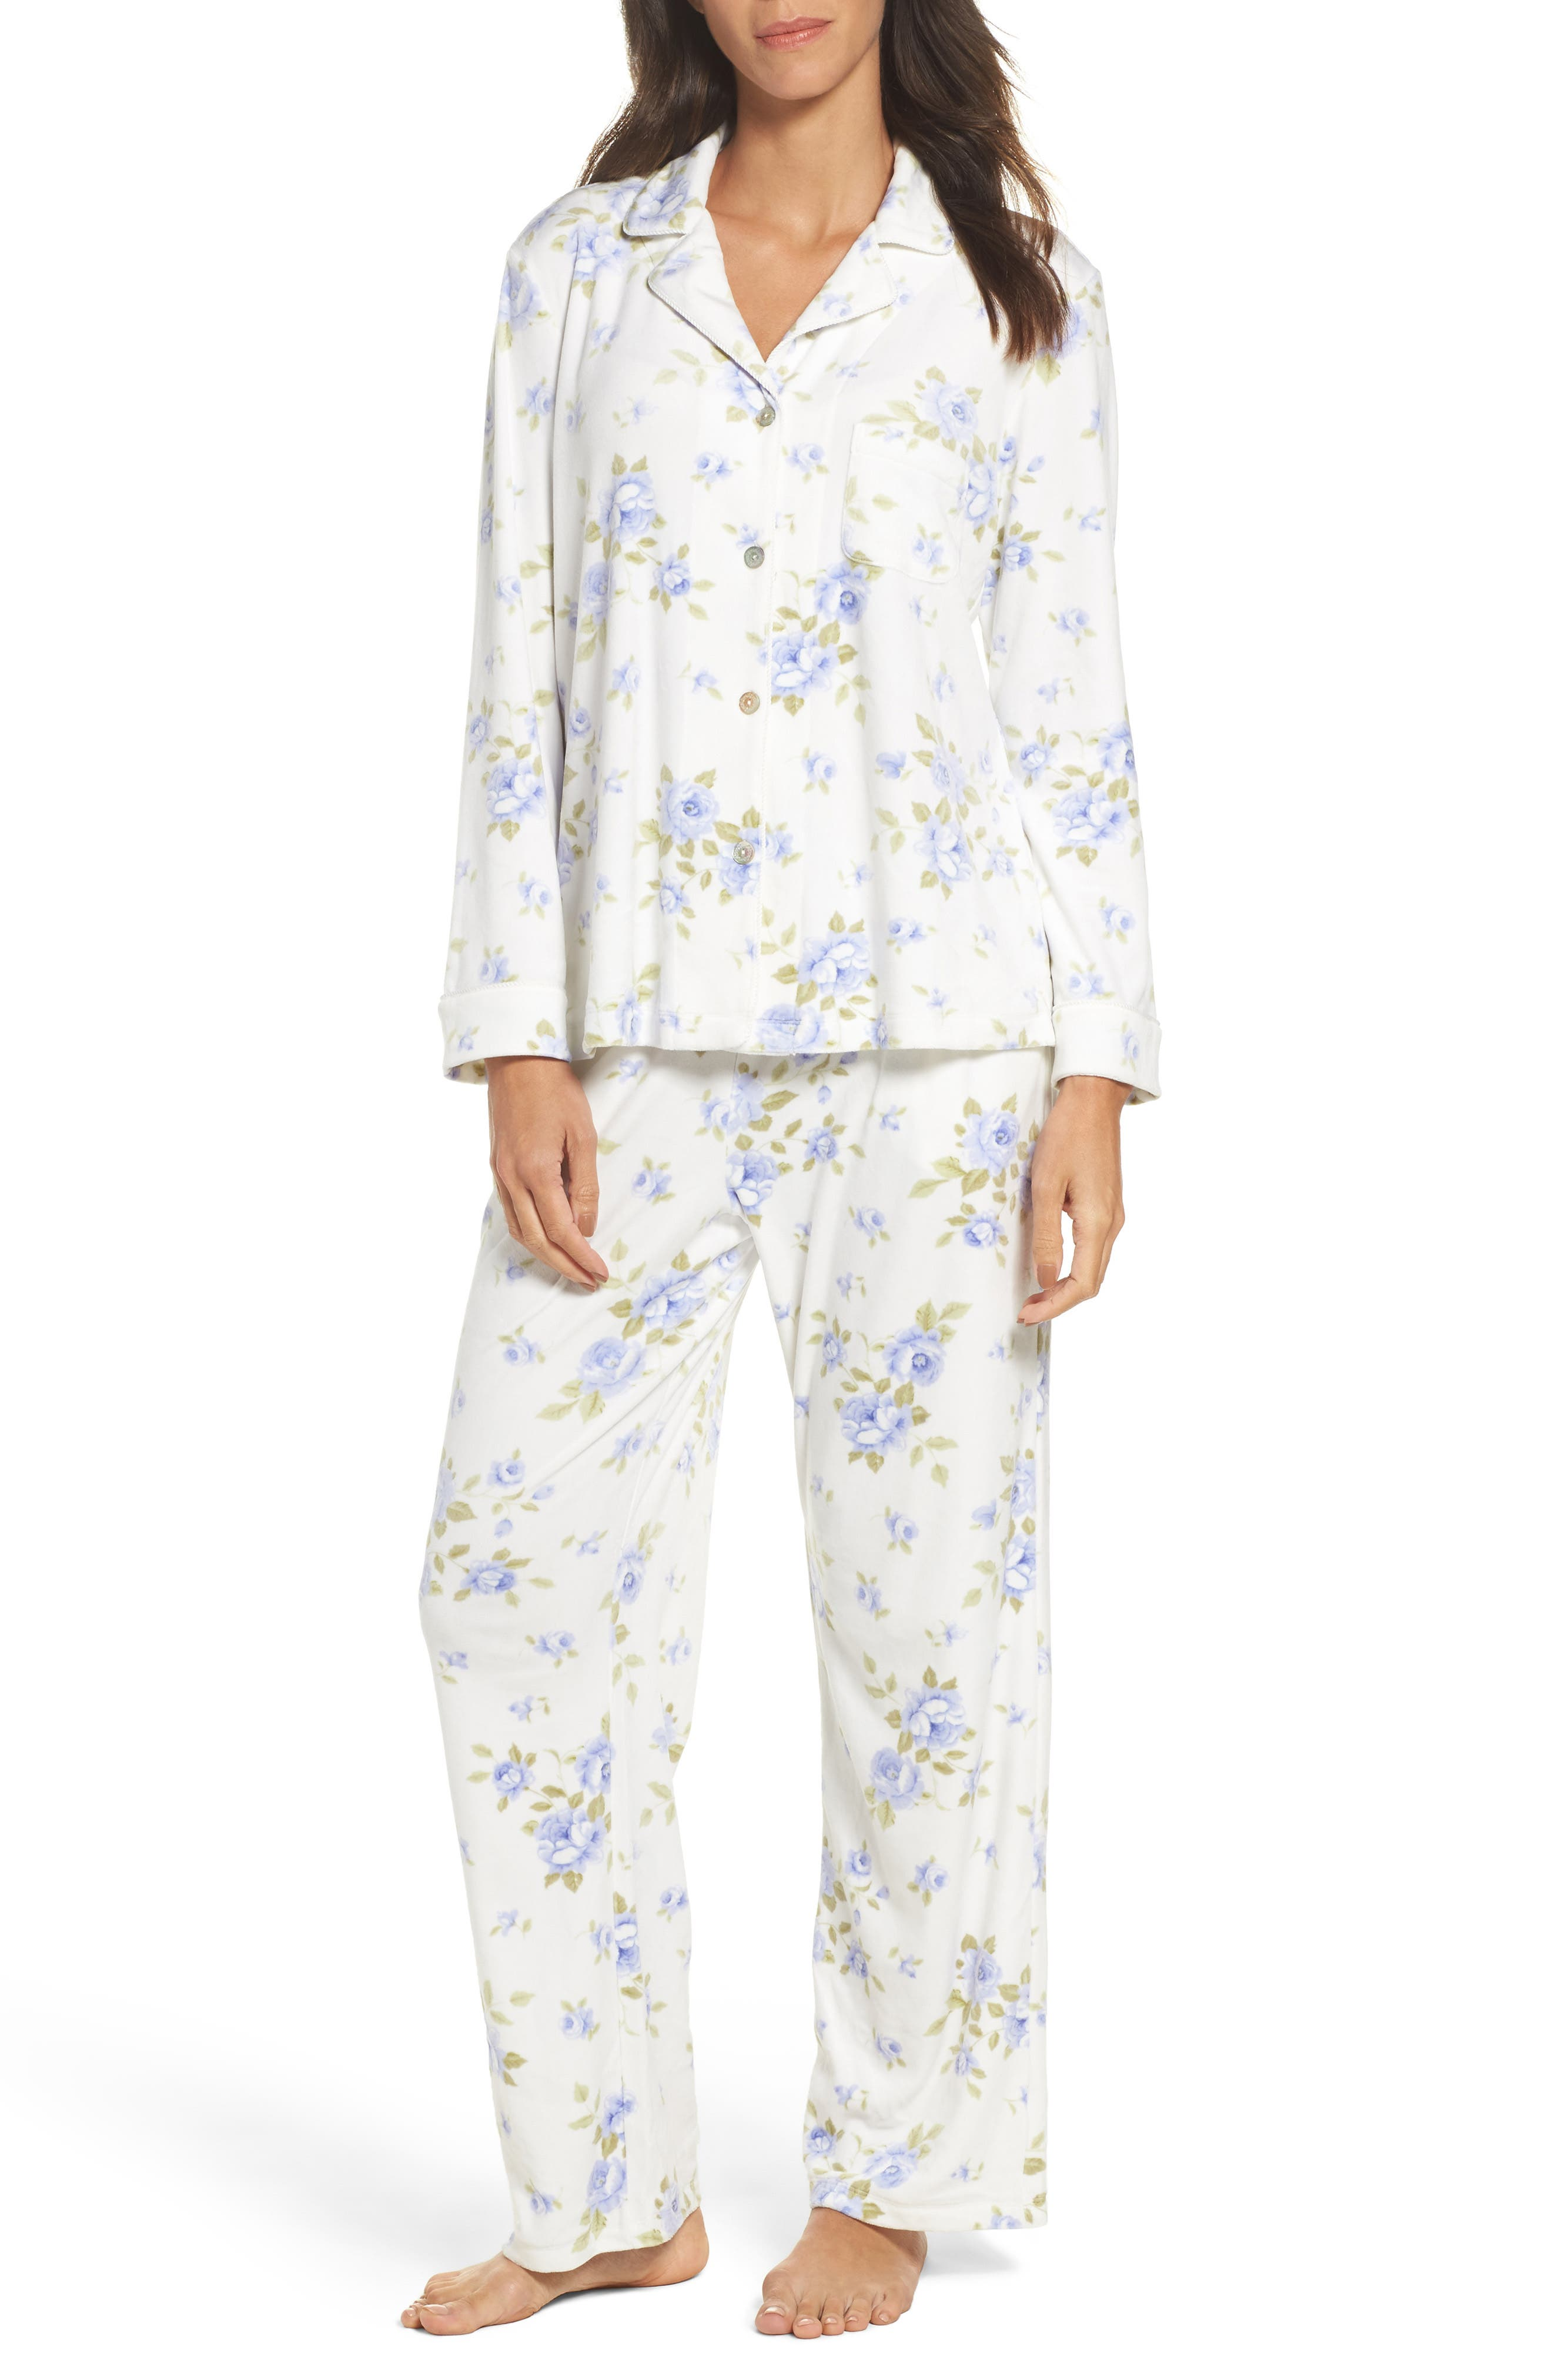 Alternate Image 1 Selected - Carole Hochman Fleece Pajamas